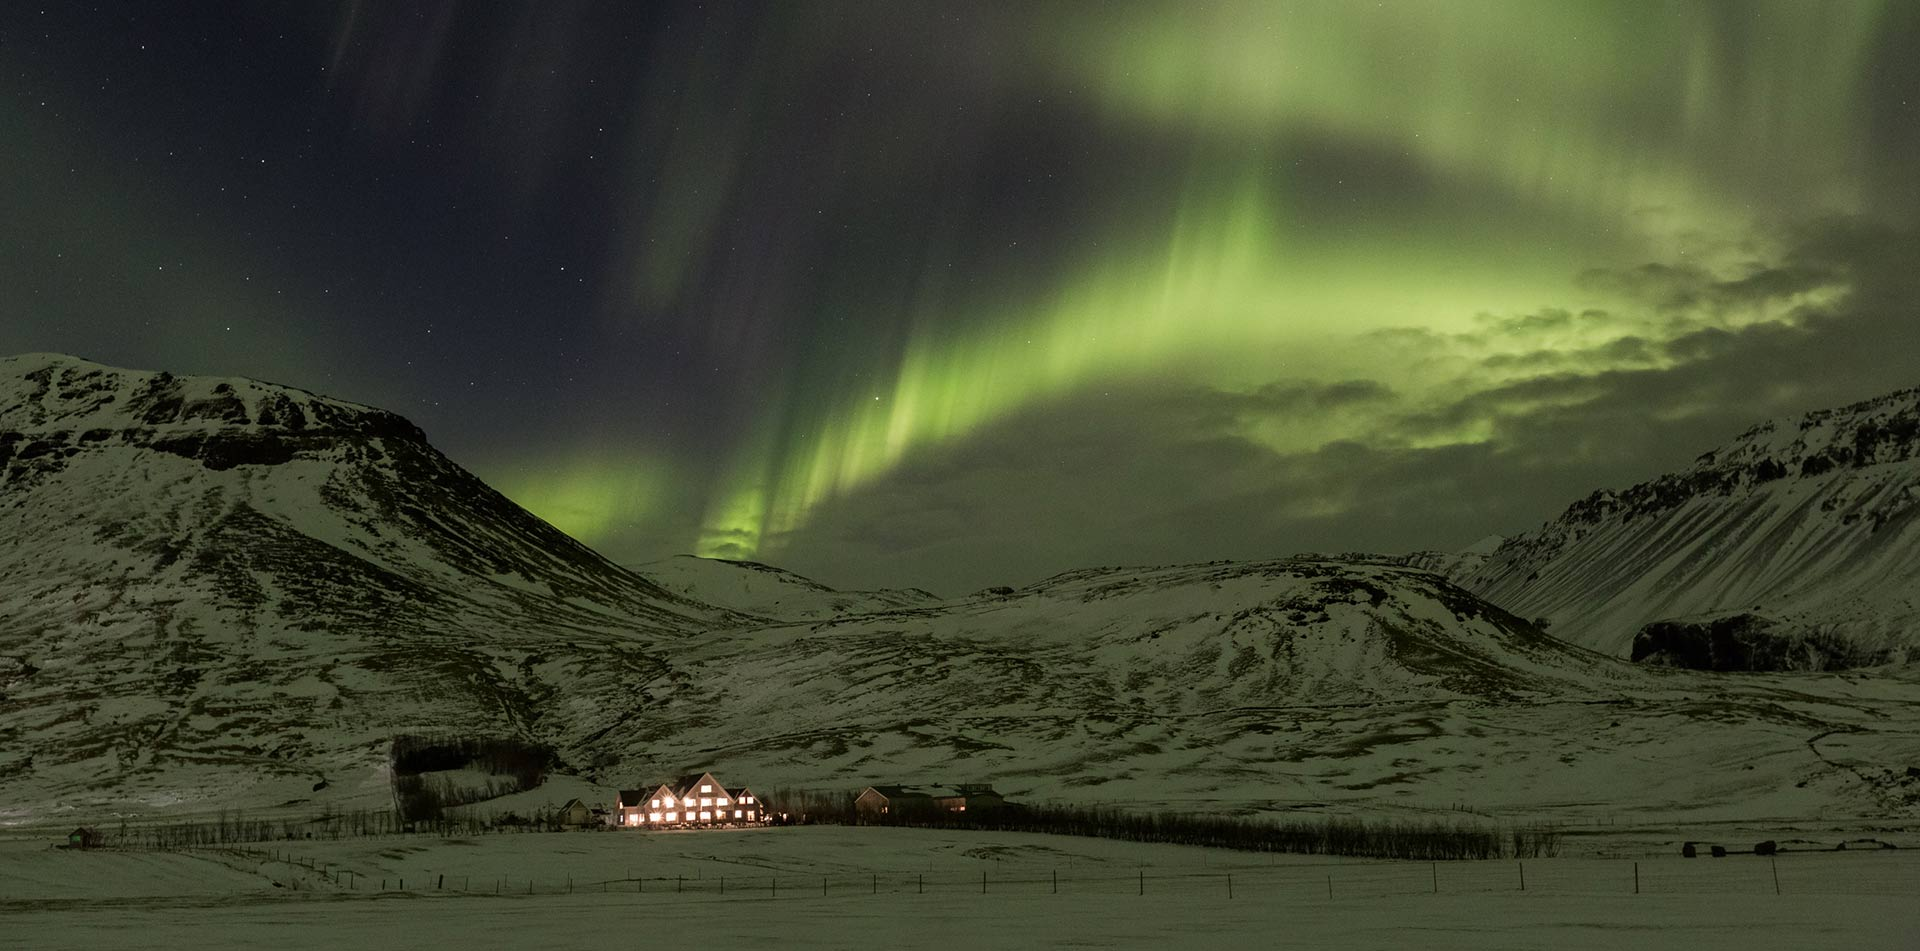 Europe Iceland Hvolsvollur Skalakot Manor Hotel colorful northern lights snow-capped mountains - luxury vacation destinations